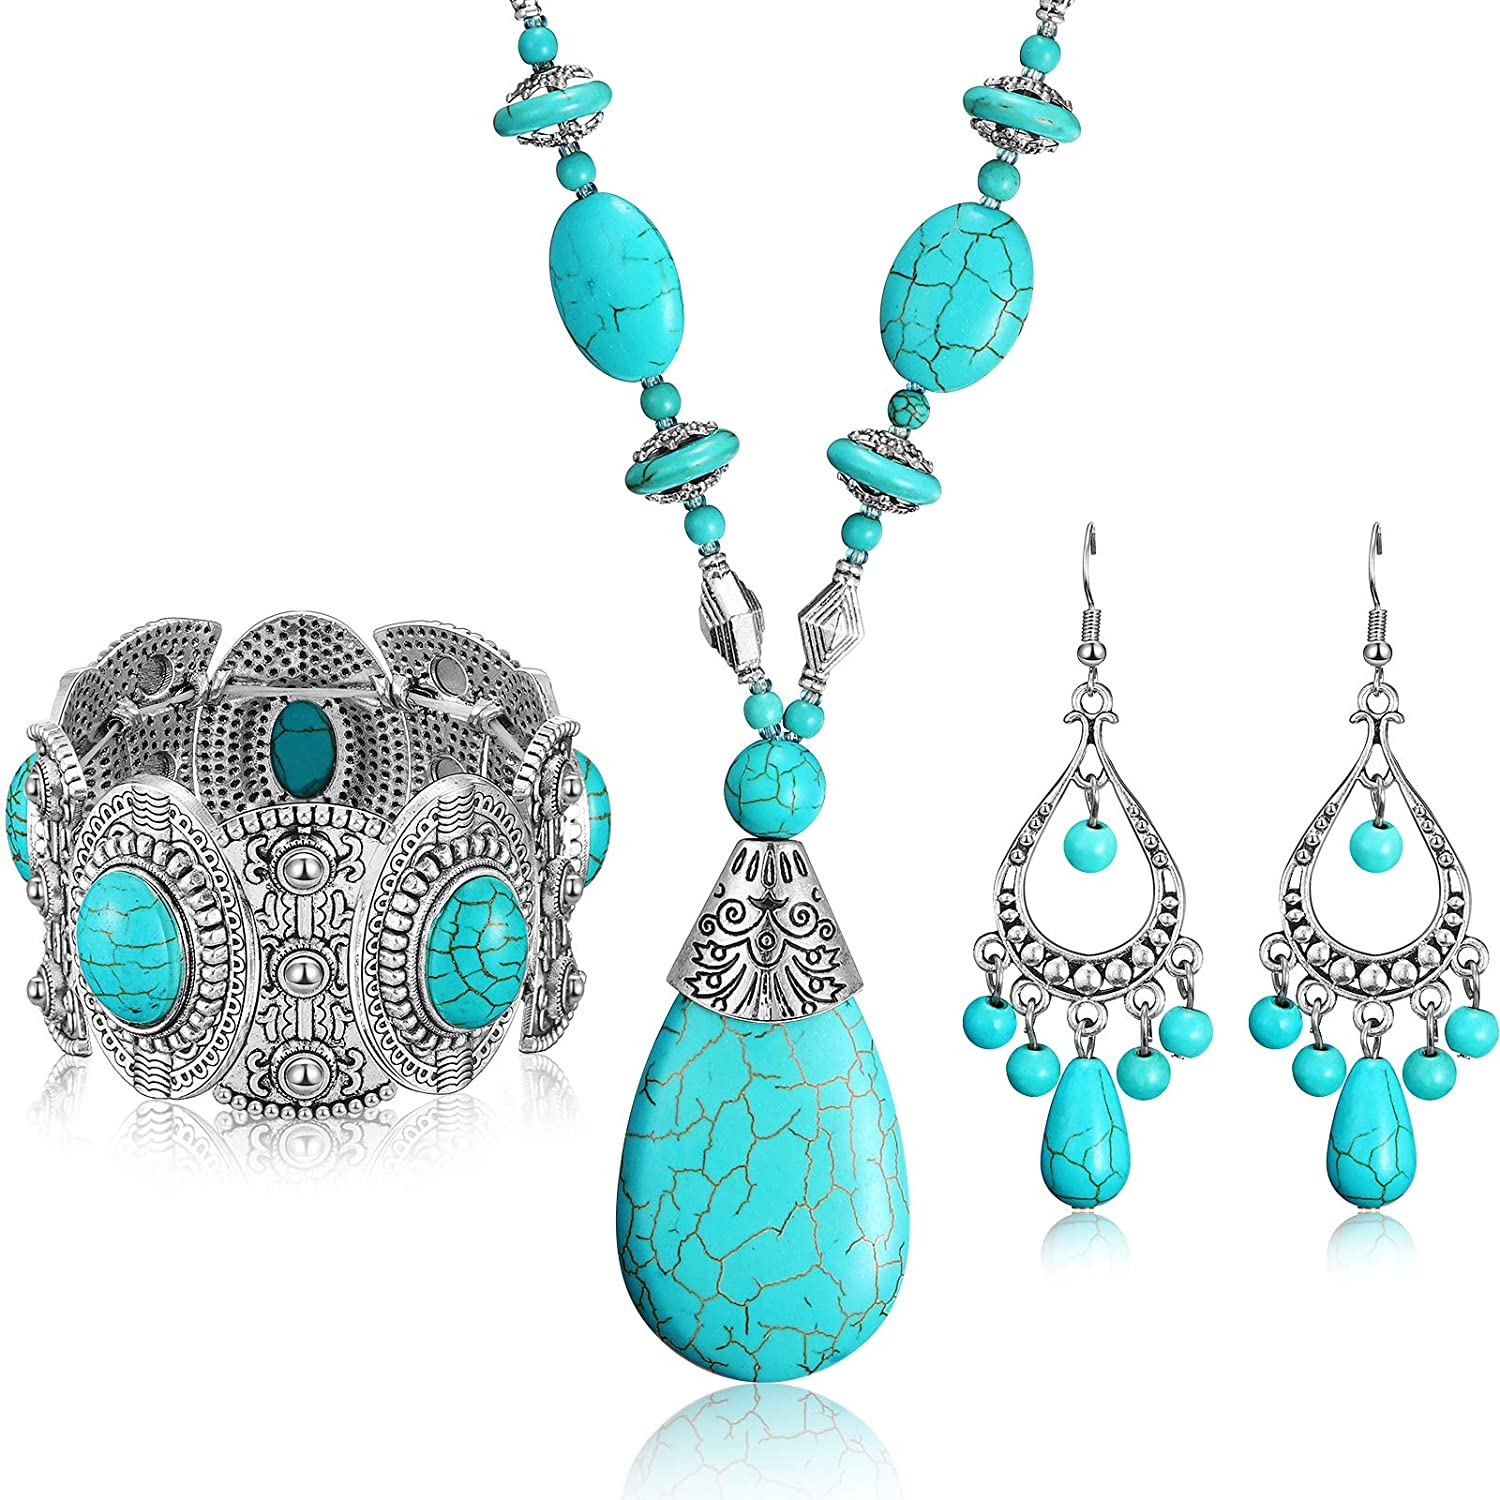 Hicarer 3 Pieces Bohemian Turquoise Set Turquoise Pendant Necklace, Vintage Turquoise Dangle Earrings, Stretchable Turquoise Bracelet for Women Statement Boho Jewelry Set